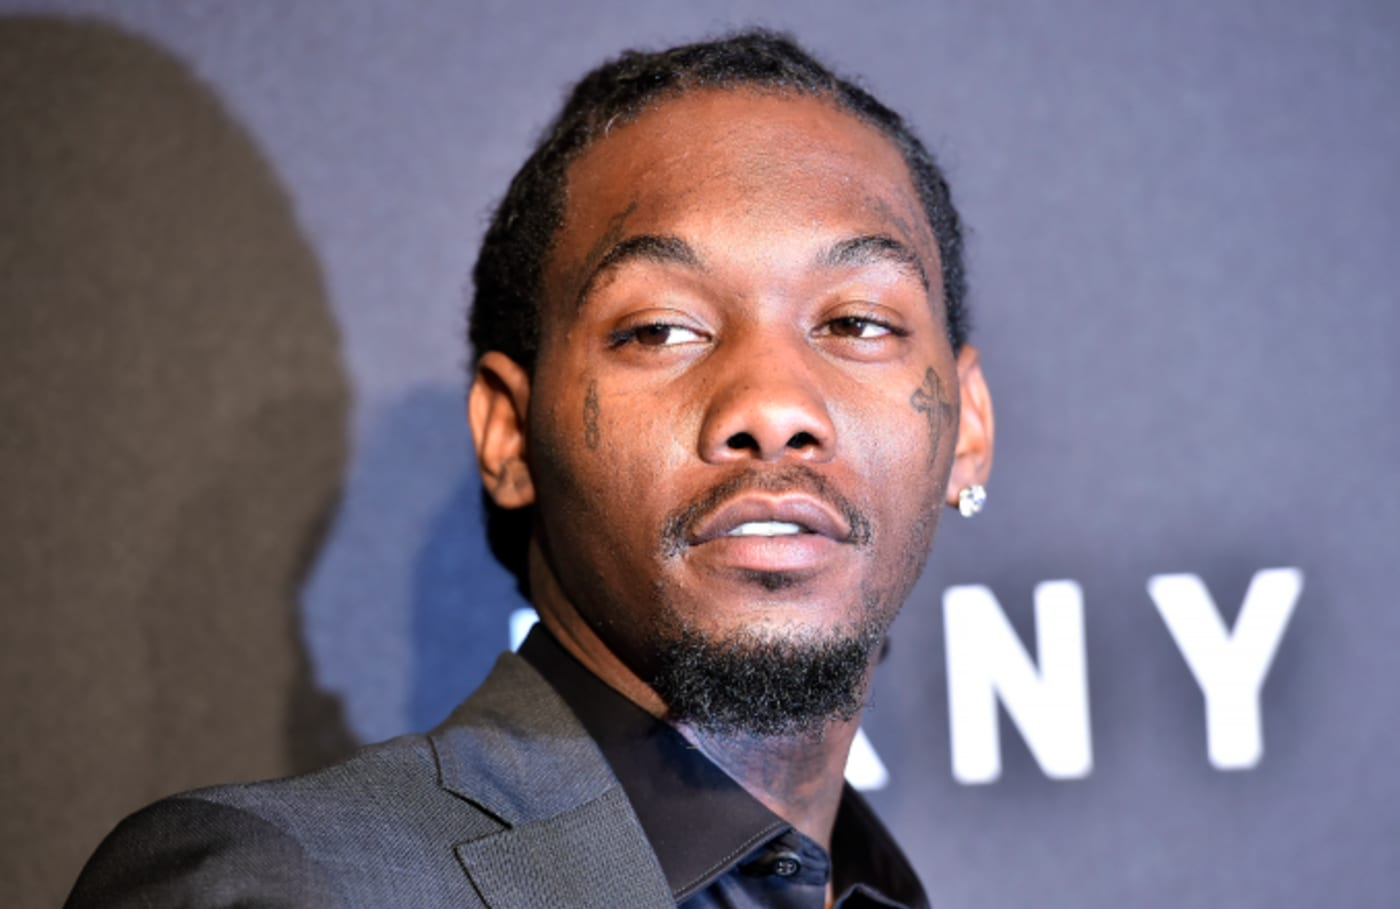 Offset attends the DKNY 30th Anniversary party